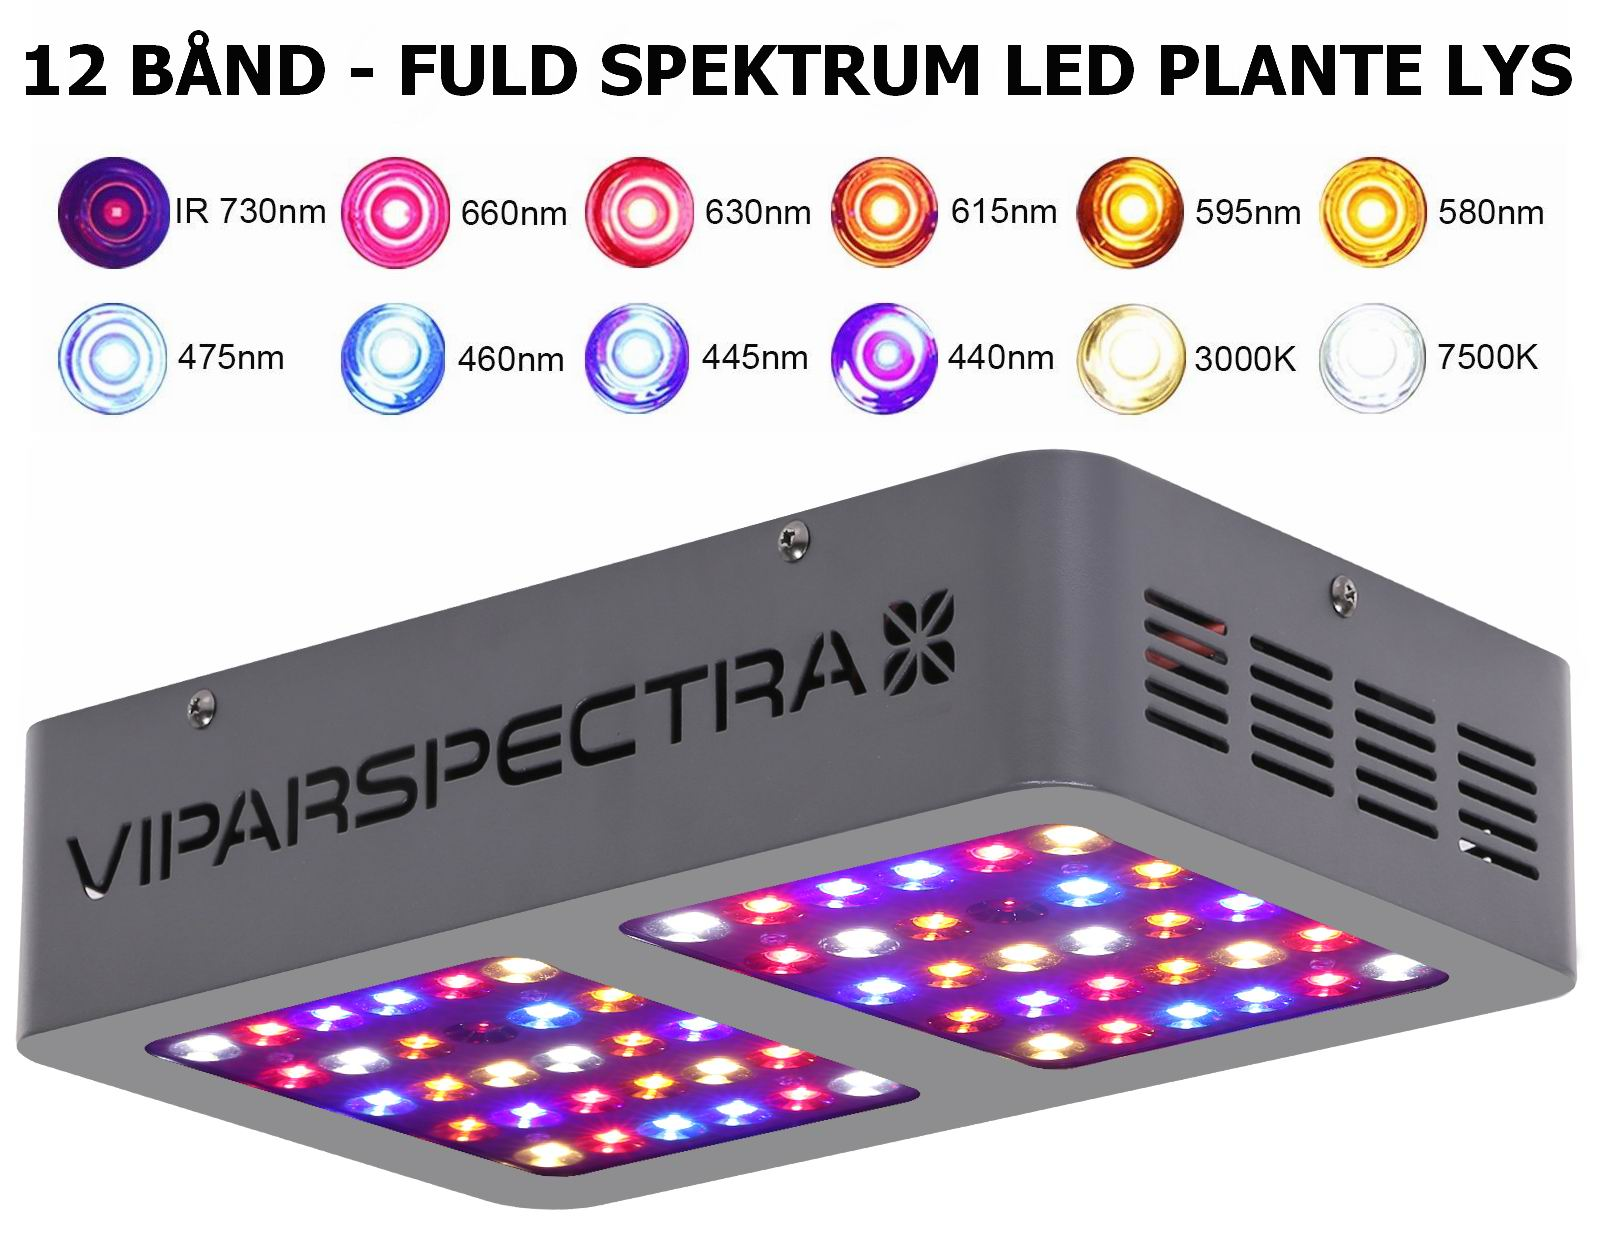 Image of   300 watt LED plante lys - Fuldt spektrum - 12 bånd